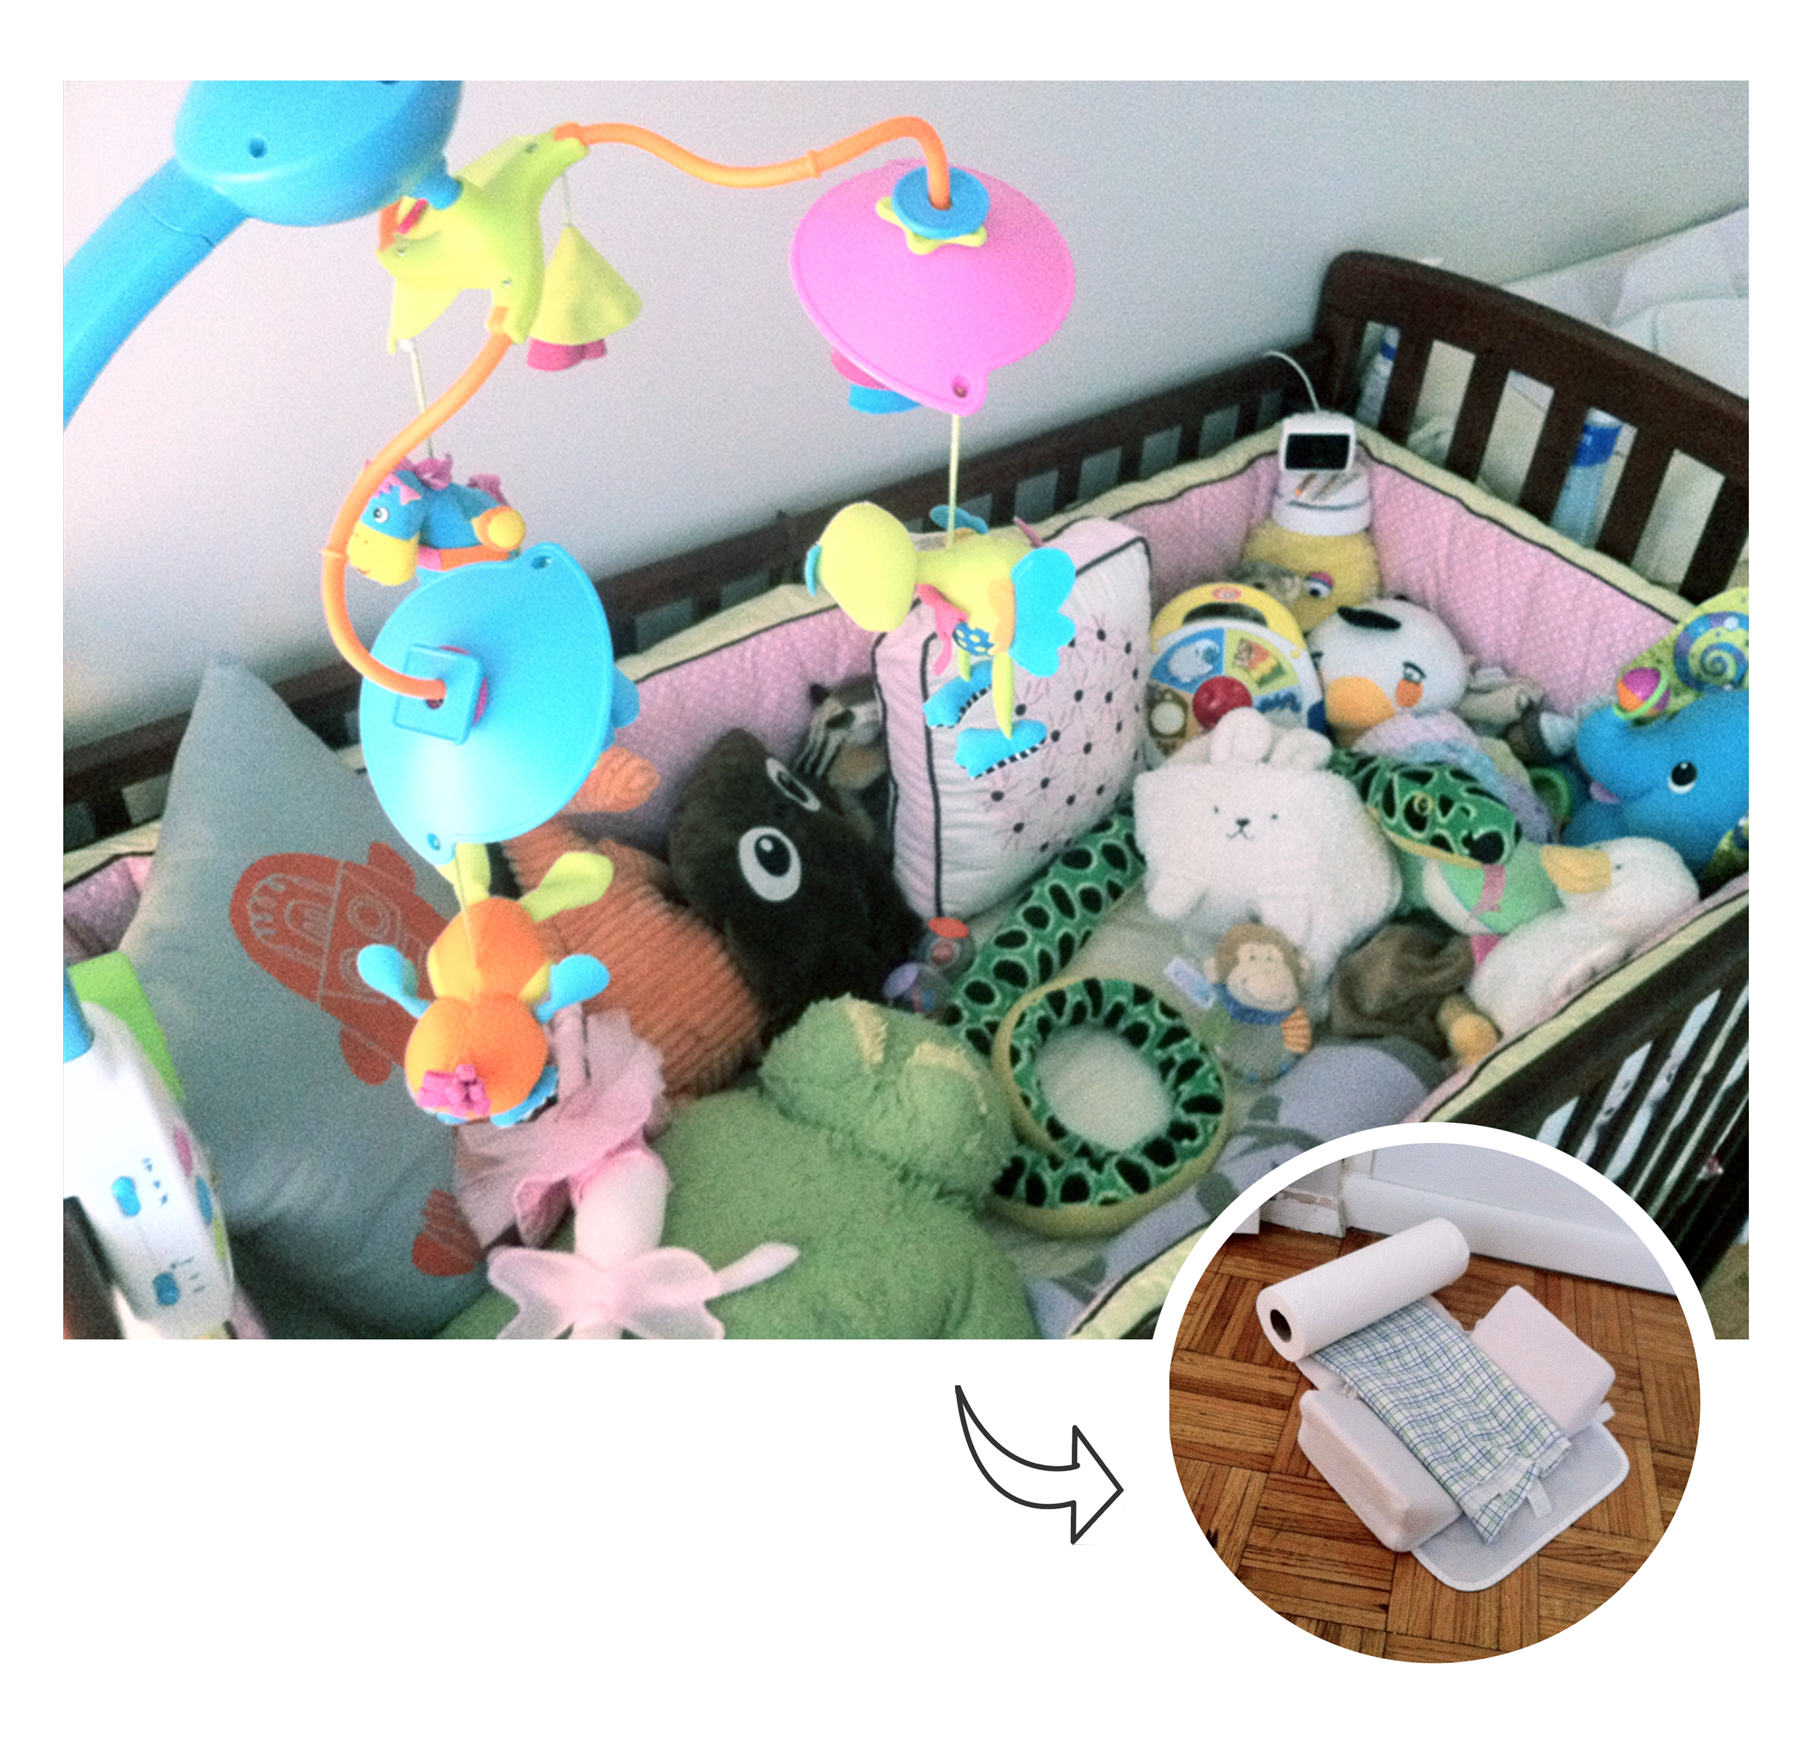 Crib Overflowing With Stuffed Animals Puffy Pillows and Assorted